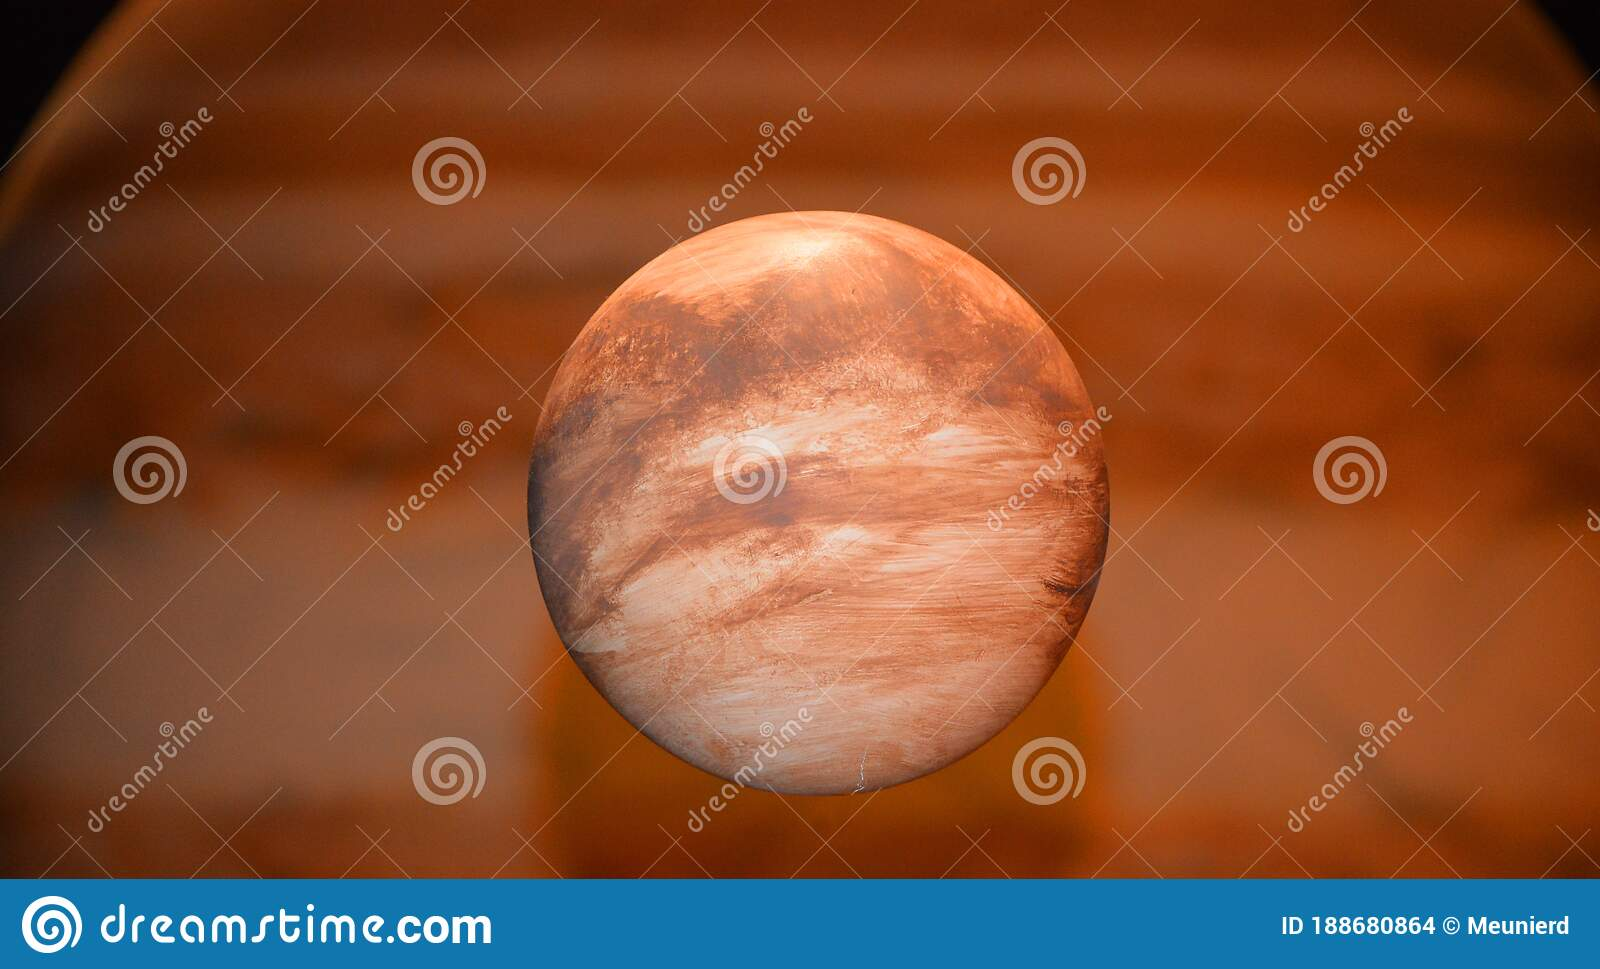 Pin by Cassy Chester on Mars | Mars, Planets, Celestial bodies